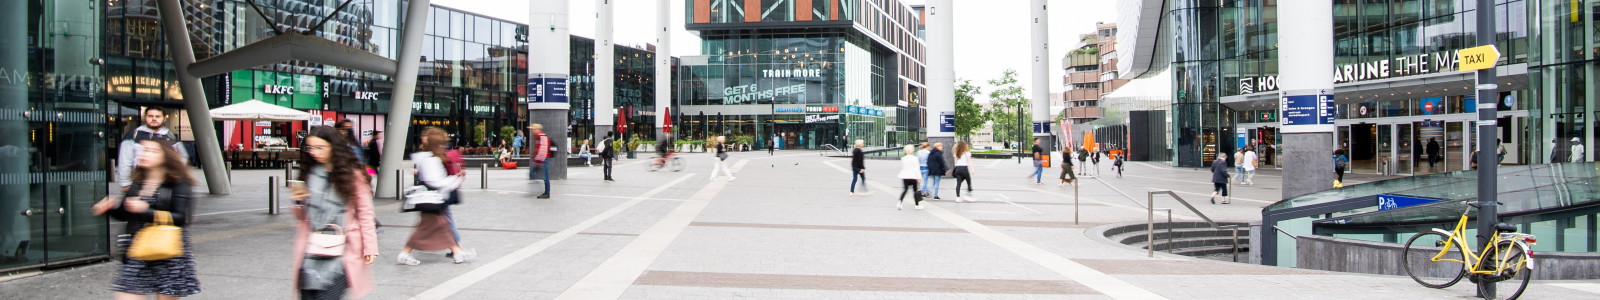 dynamic city and station biew with people passing by